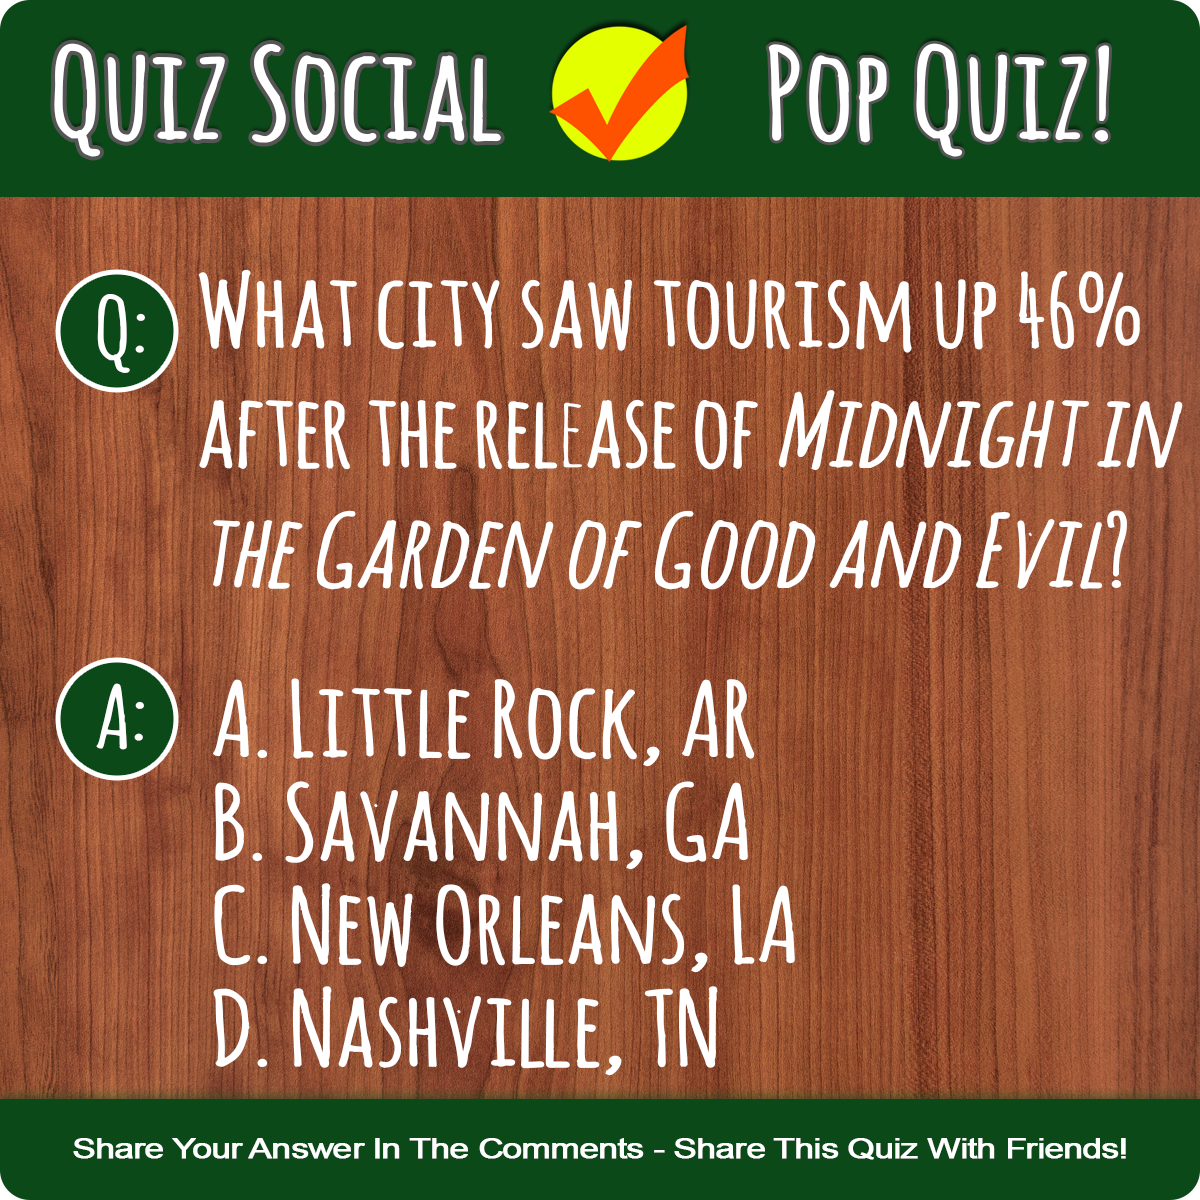 What city saw tourism up 46% after the release of Midnight in the ...